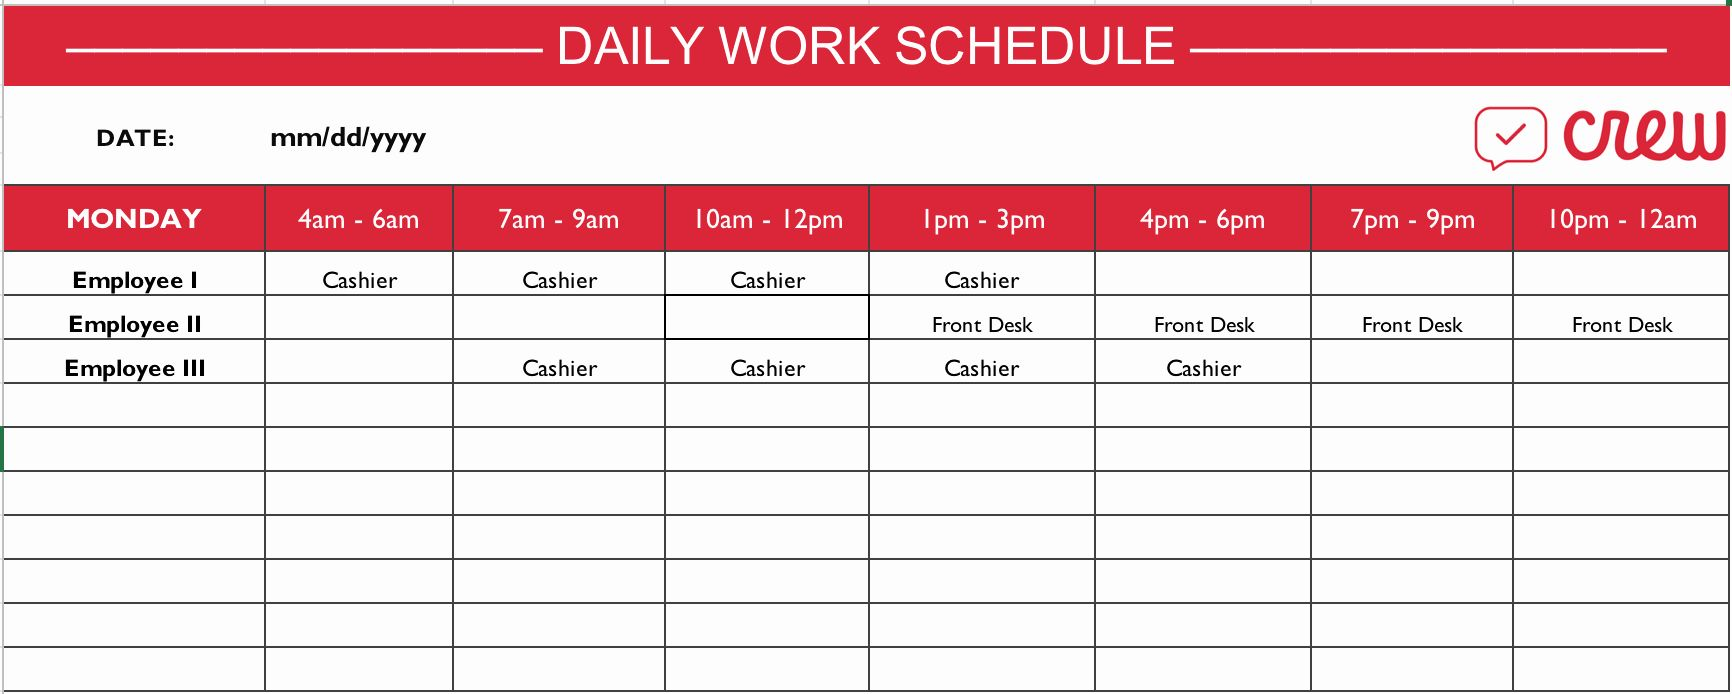 Monthly Work Schedule Template Inspirational Free Daily